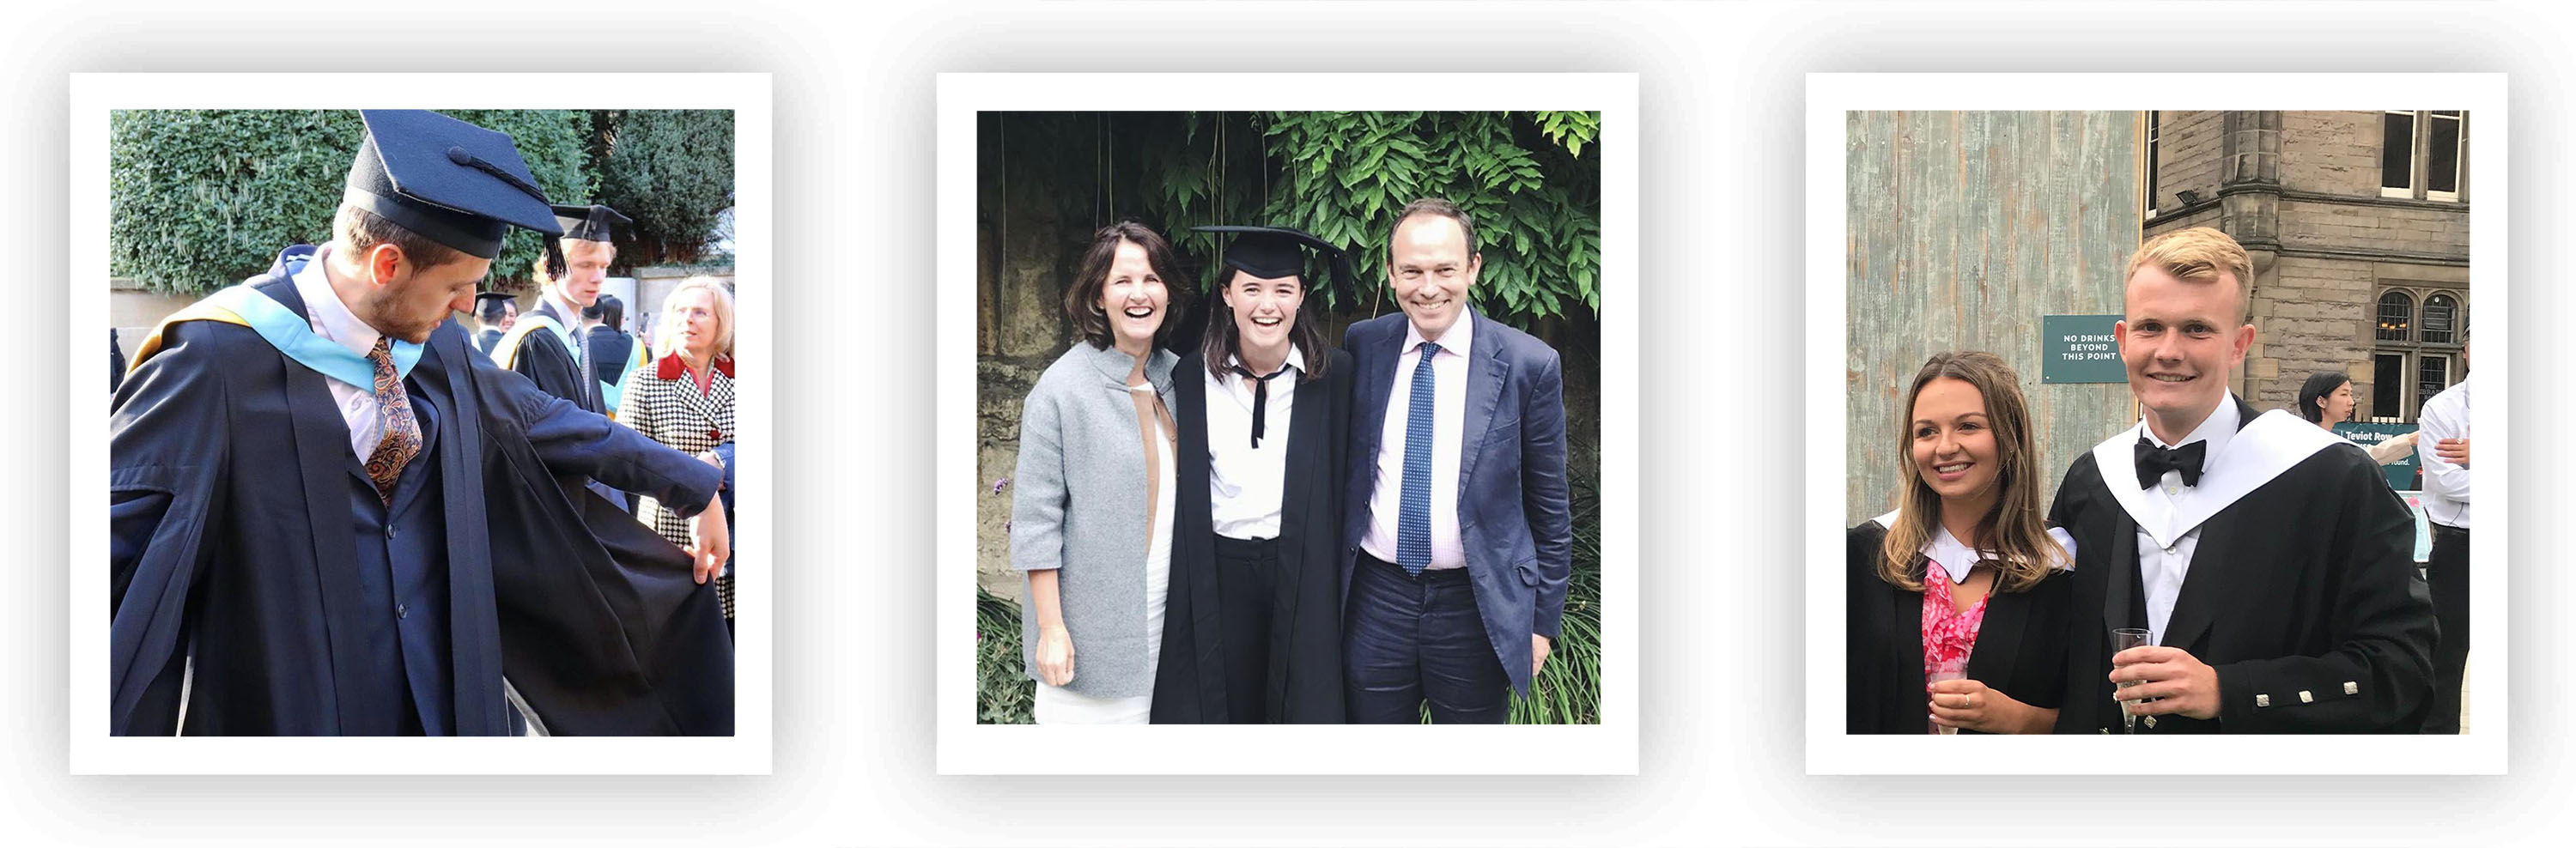 JJ, Annabel and James – some of our recent grad joiners